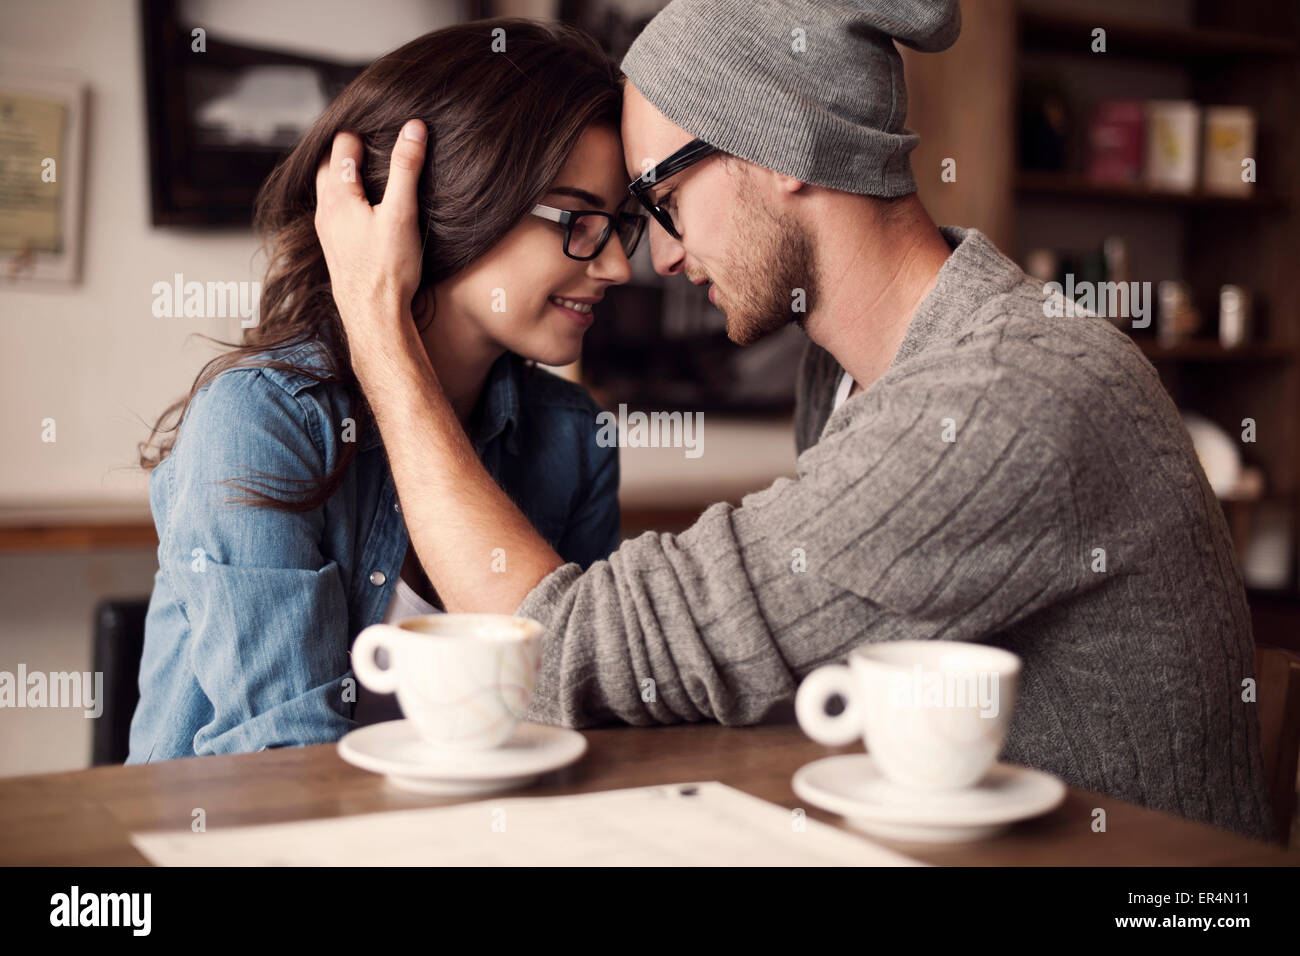 Romantic moments for young couple. Krakow, Poland - Stock Image